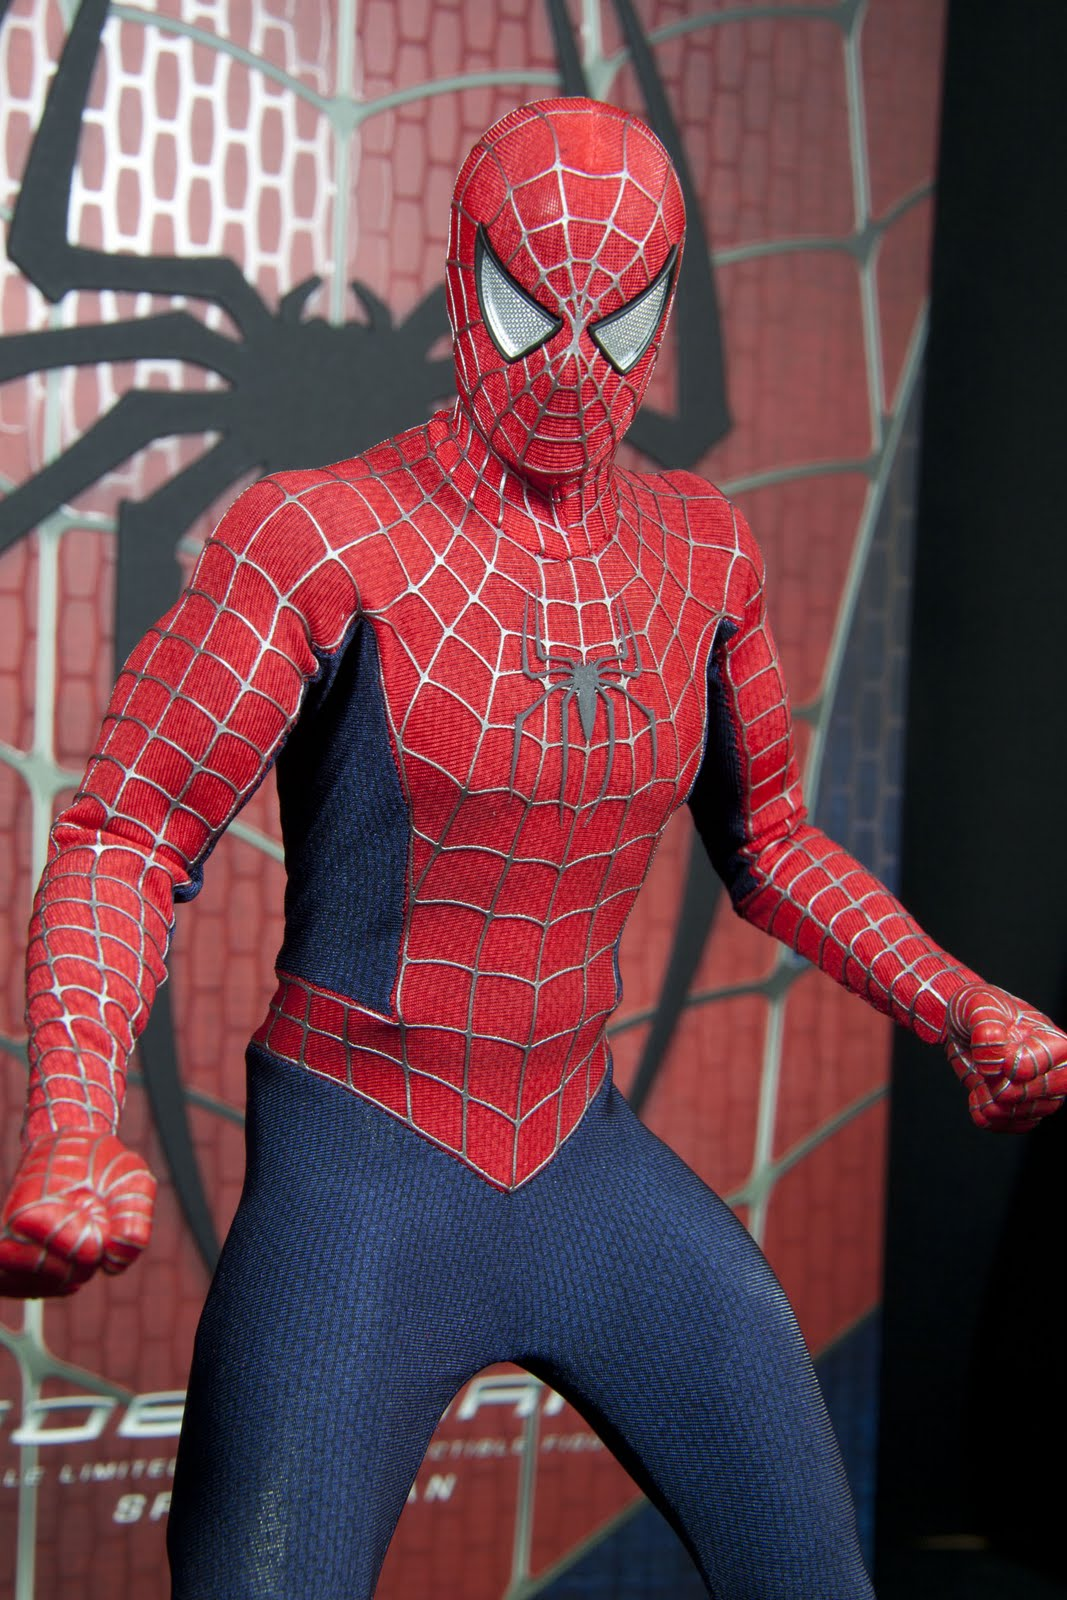 HOT TOYS SPIDERMAN 1/6 MINT | eBay